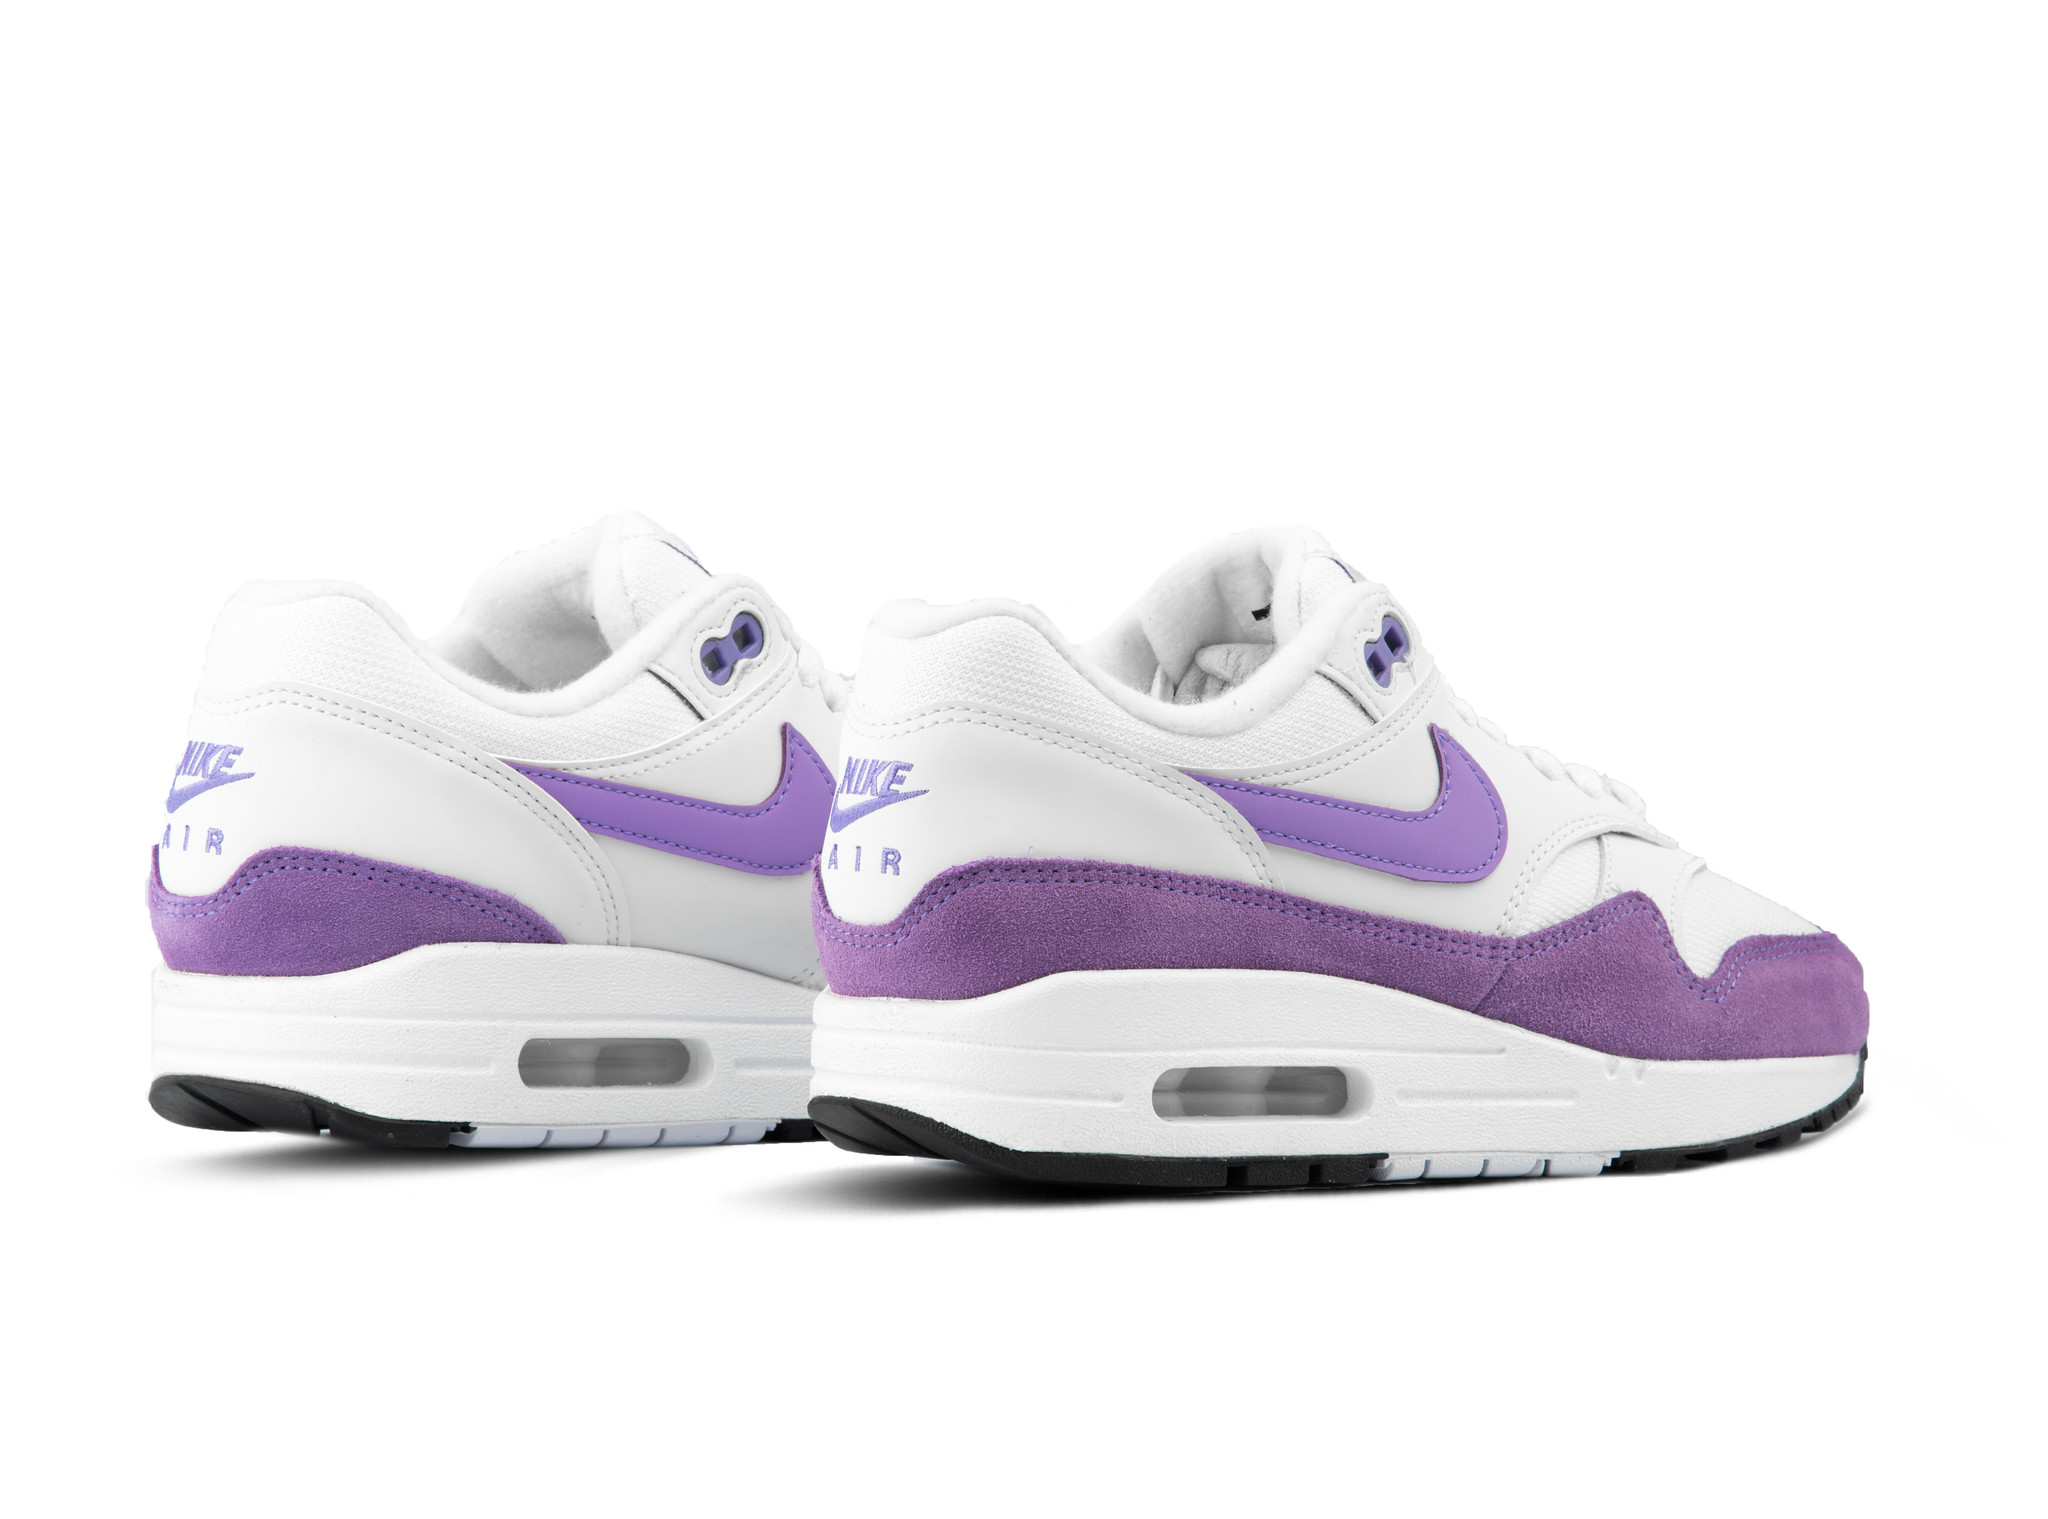 Buy online Nike Wmns Air Max 1 in Summit White Atomic